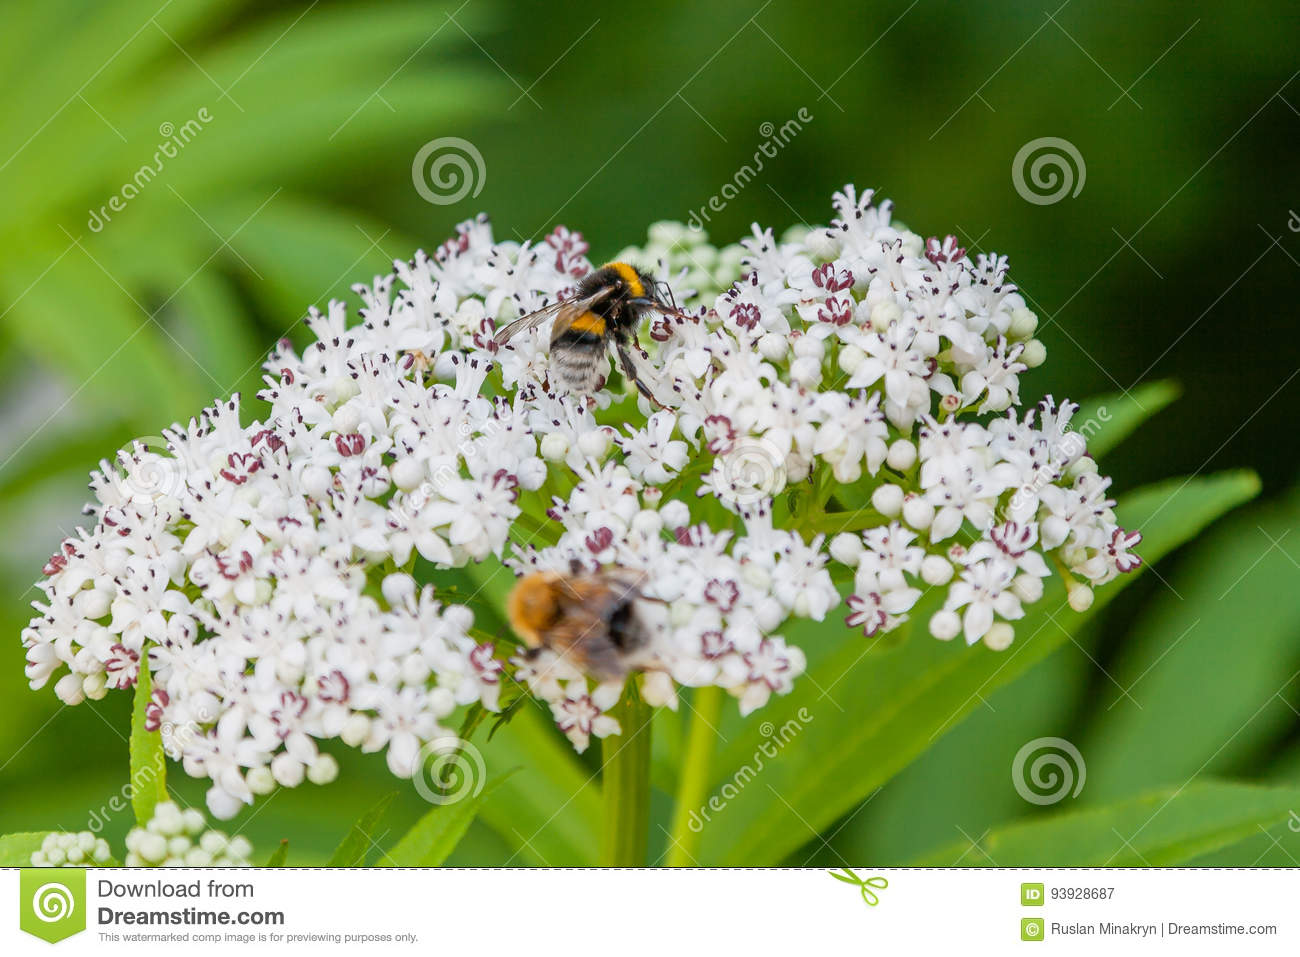 The bee sits on white flowers